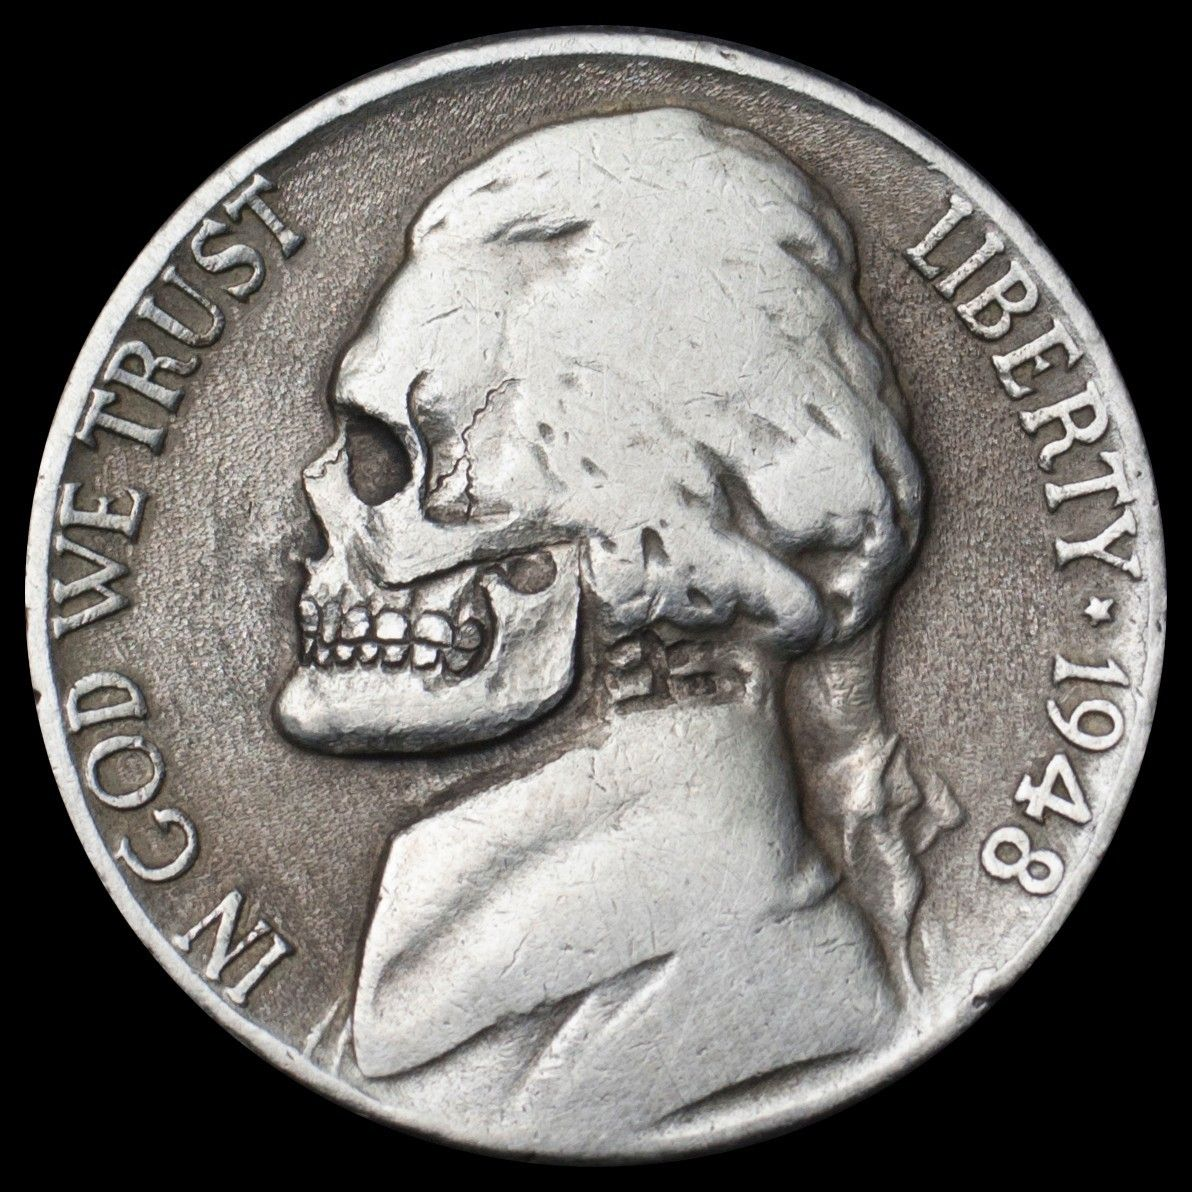 1948 Jefferson nickel 5 Cents skull